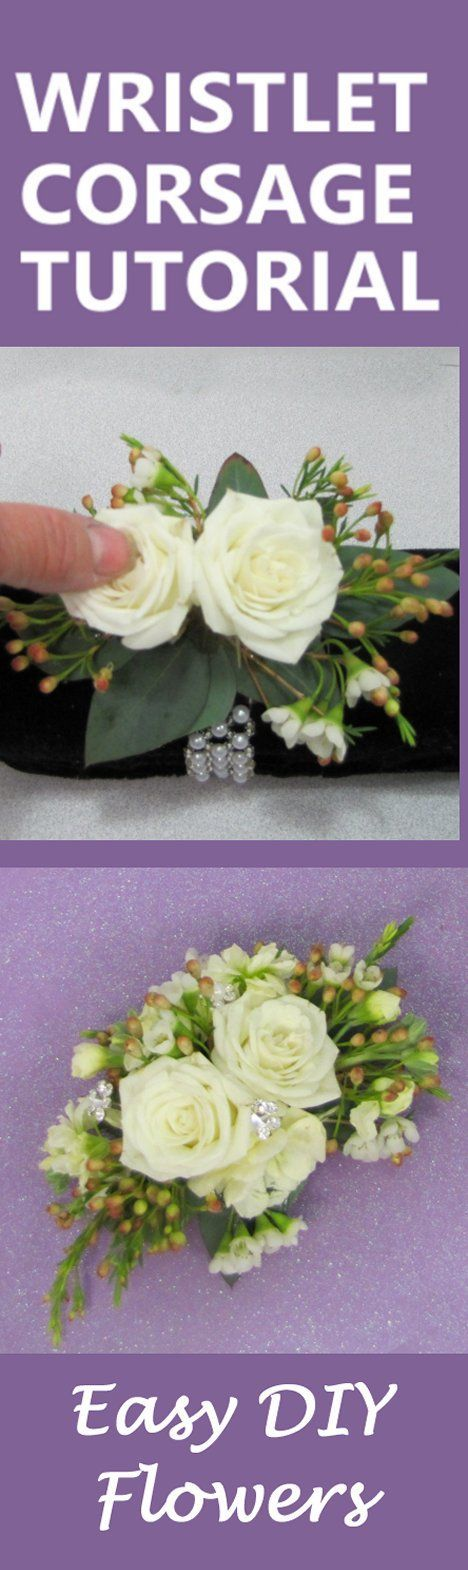 How To Make Wedding Bouquets And Corsages : Wrist corsage florist supplies and diy wedding flowers on